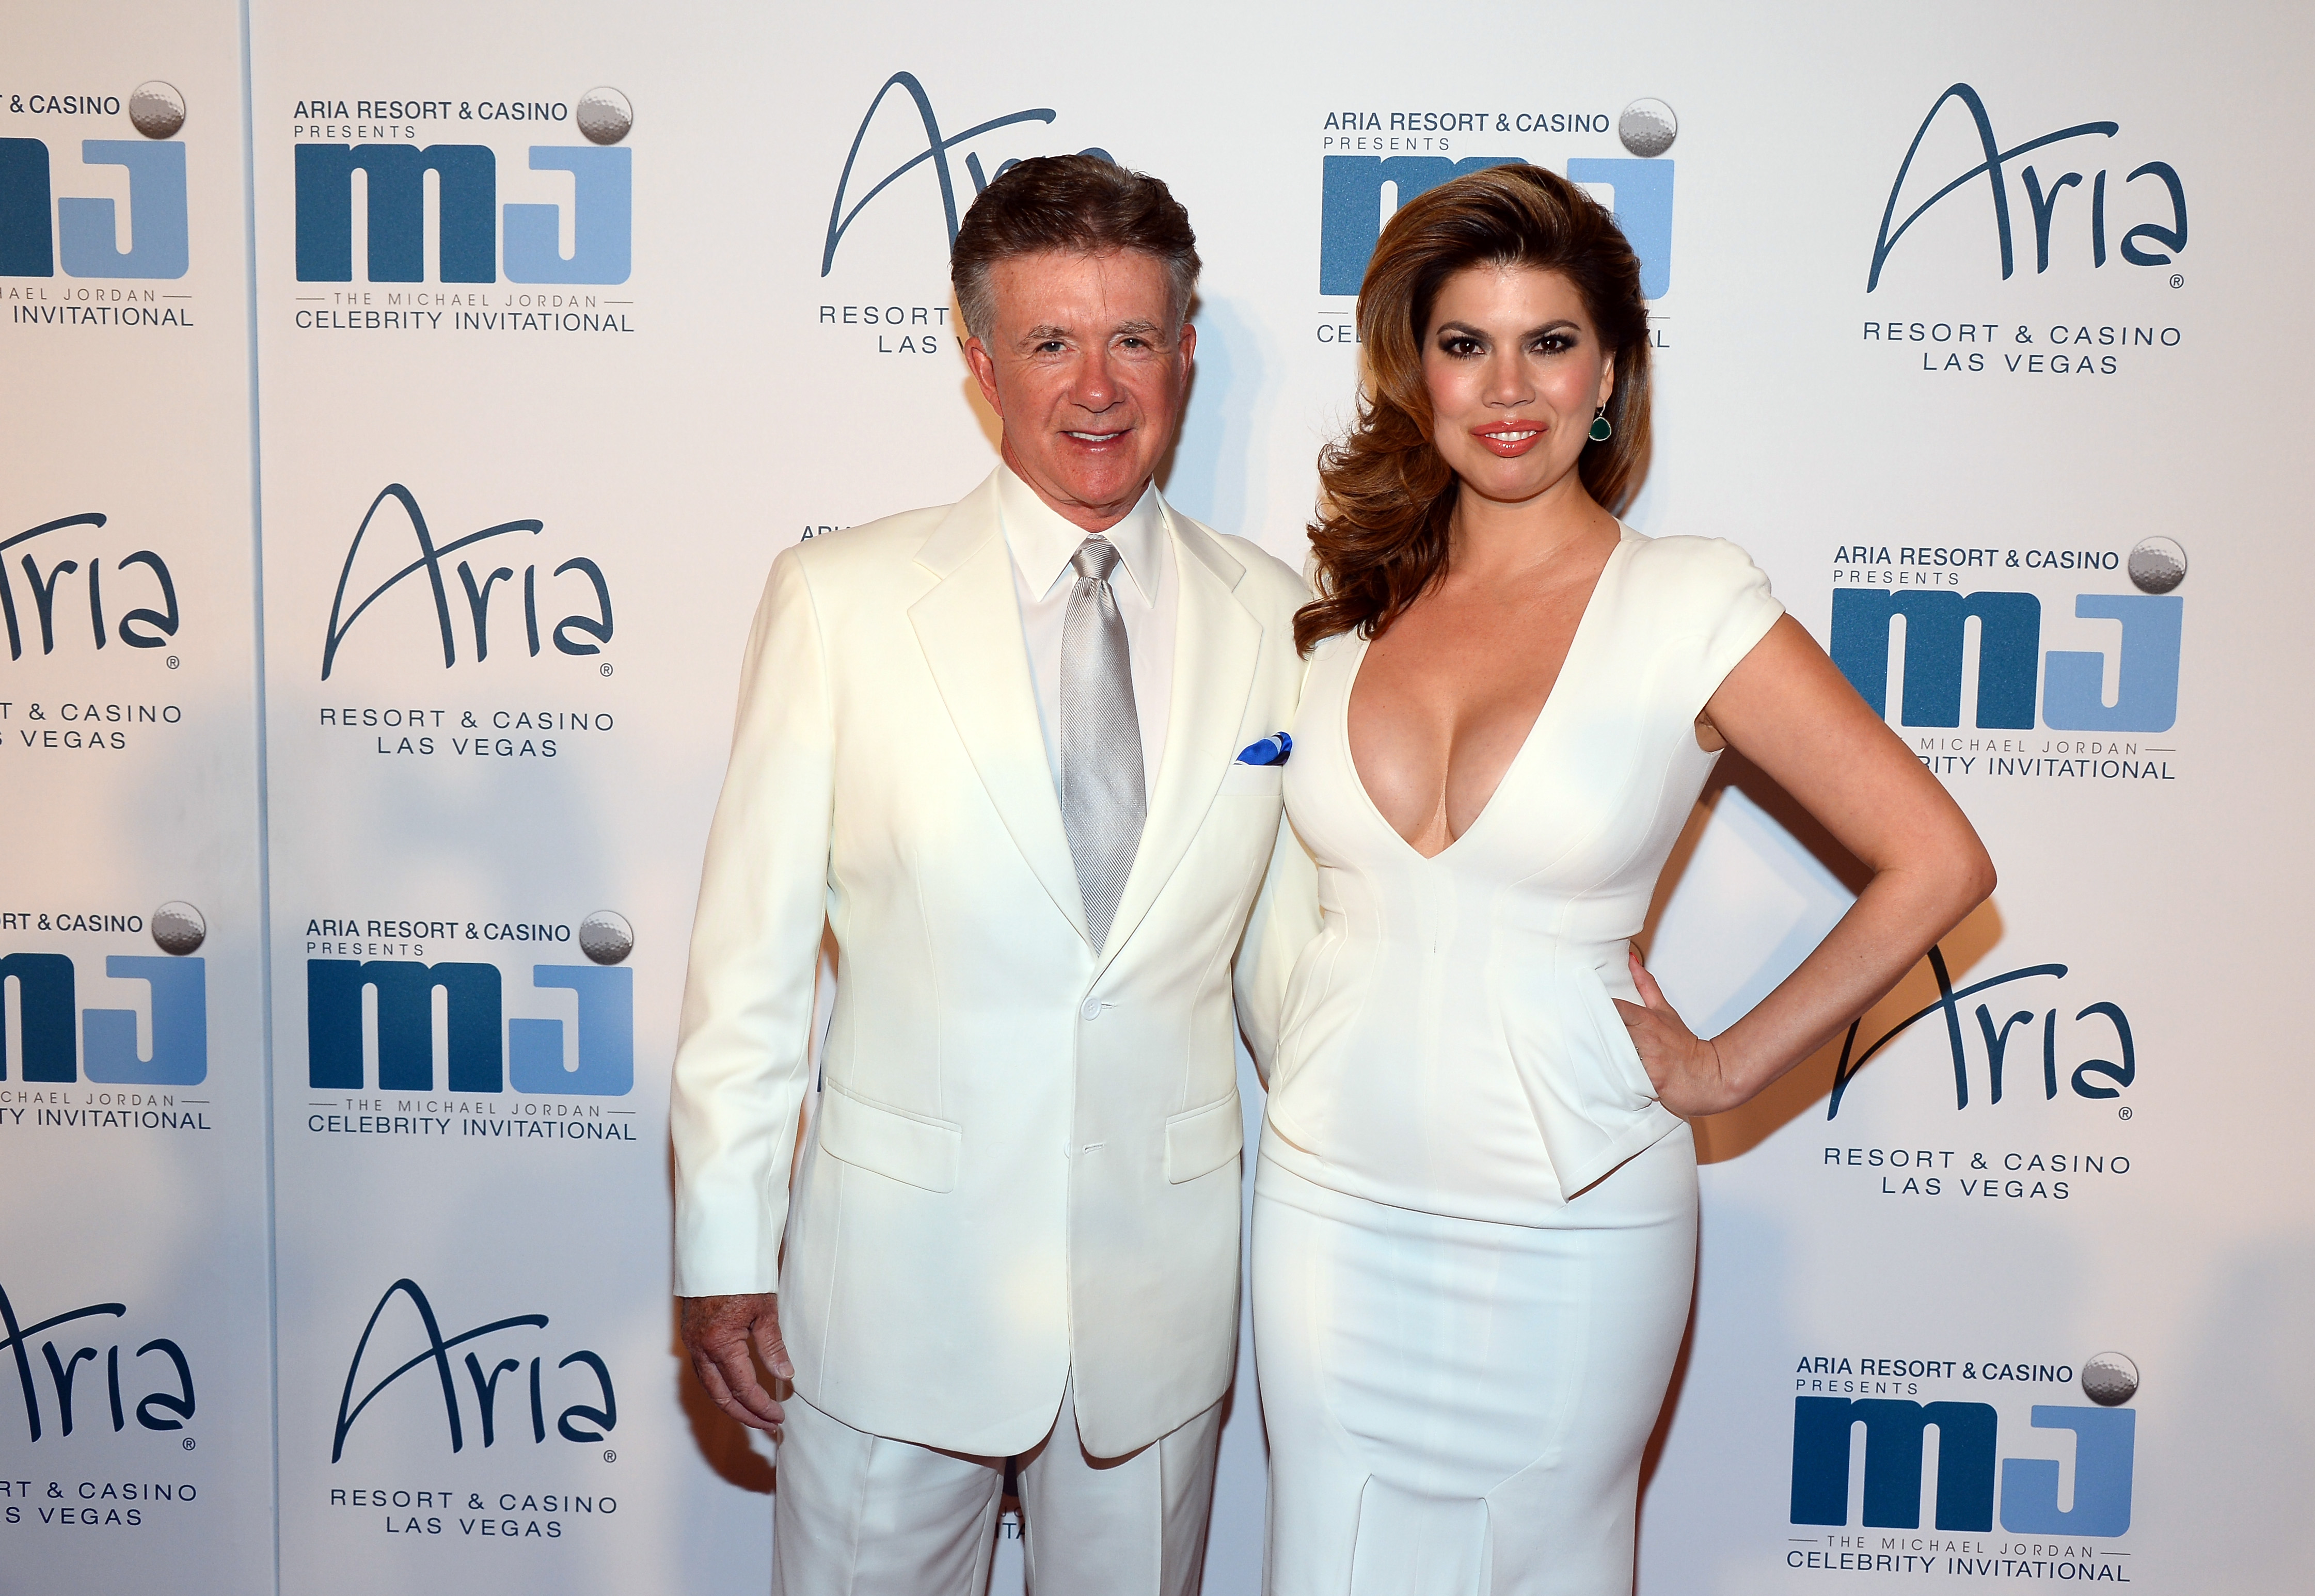 4484x3092 - Alan Thicke Wallpapers 23